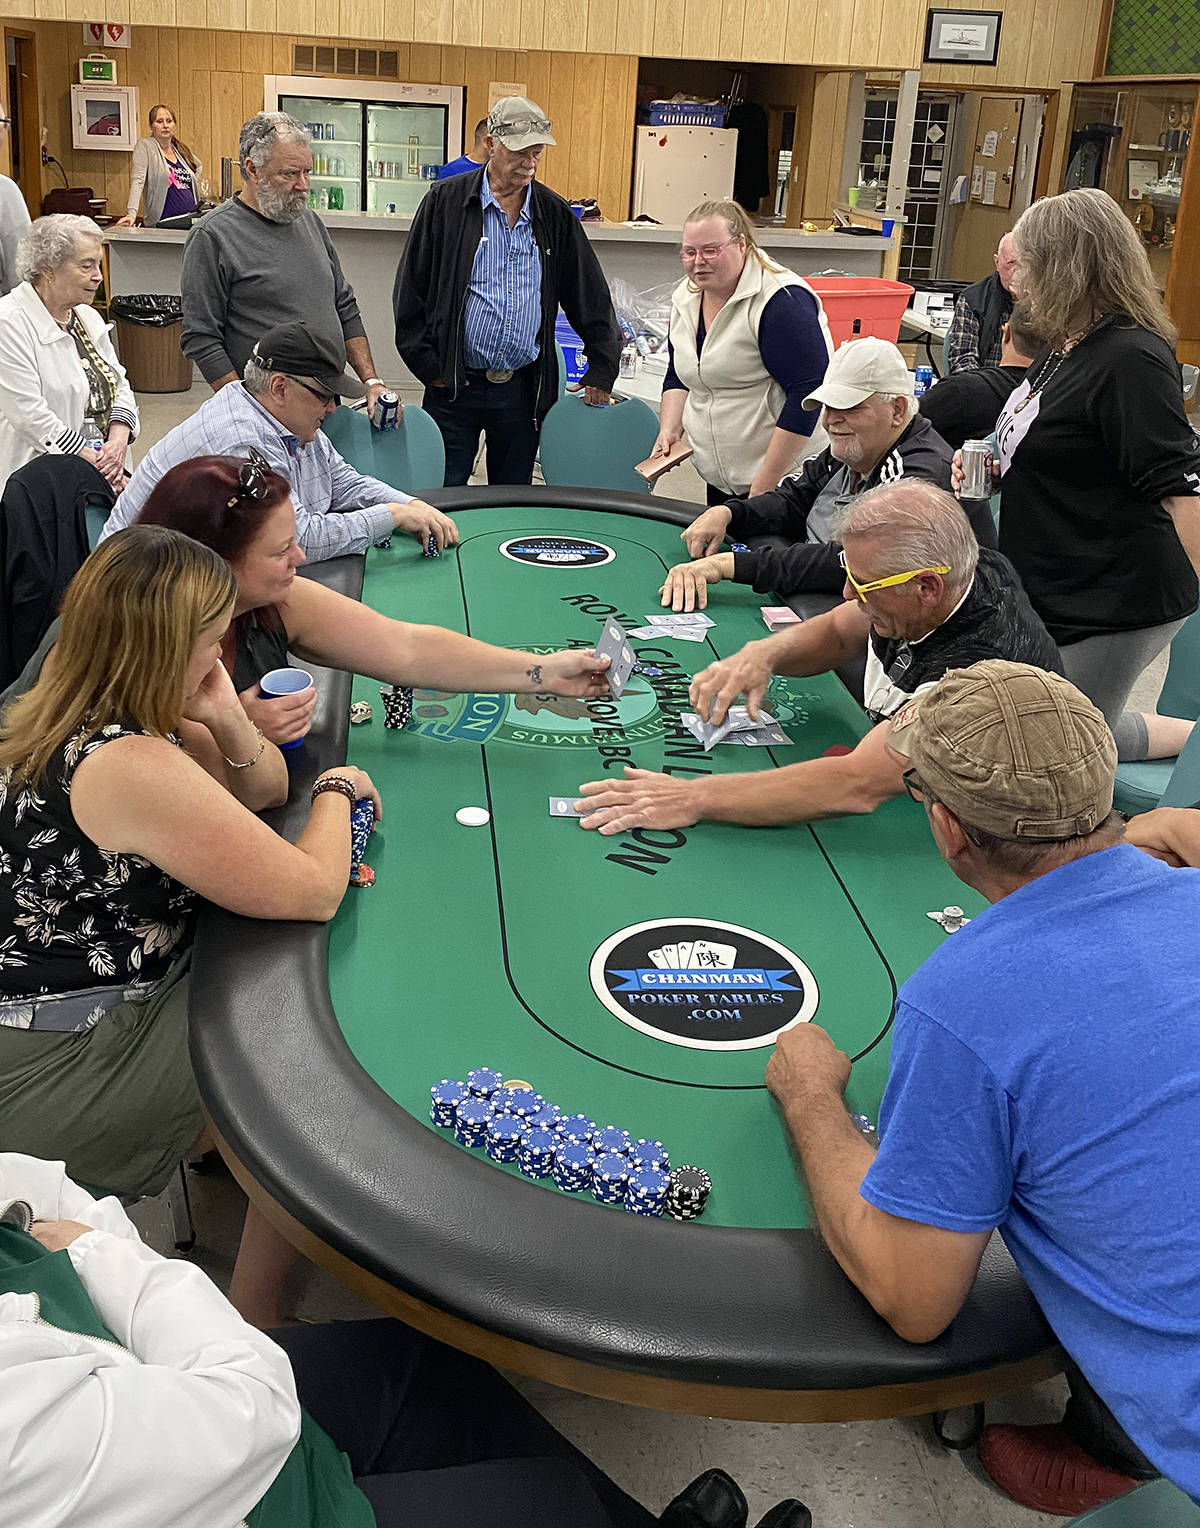 A few dozen poker enthusiasts participated in last Saturday's Mangat poker tournament held at the legion in Aldergrove. It is an annual fundraiser for cancer. (Special to The Star)